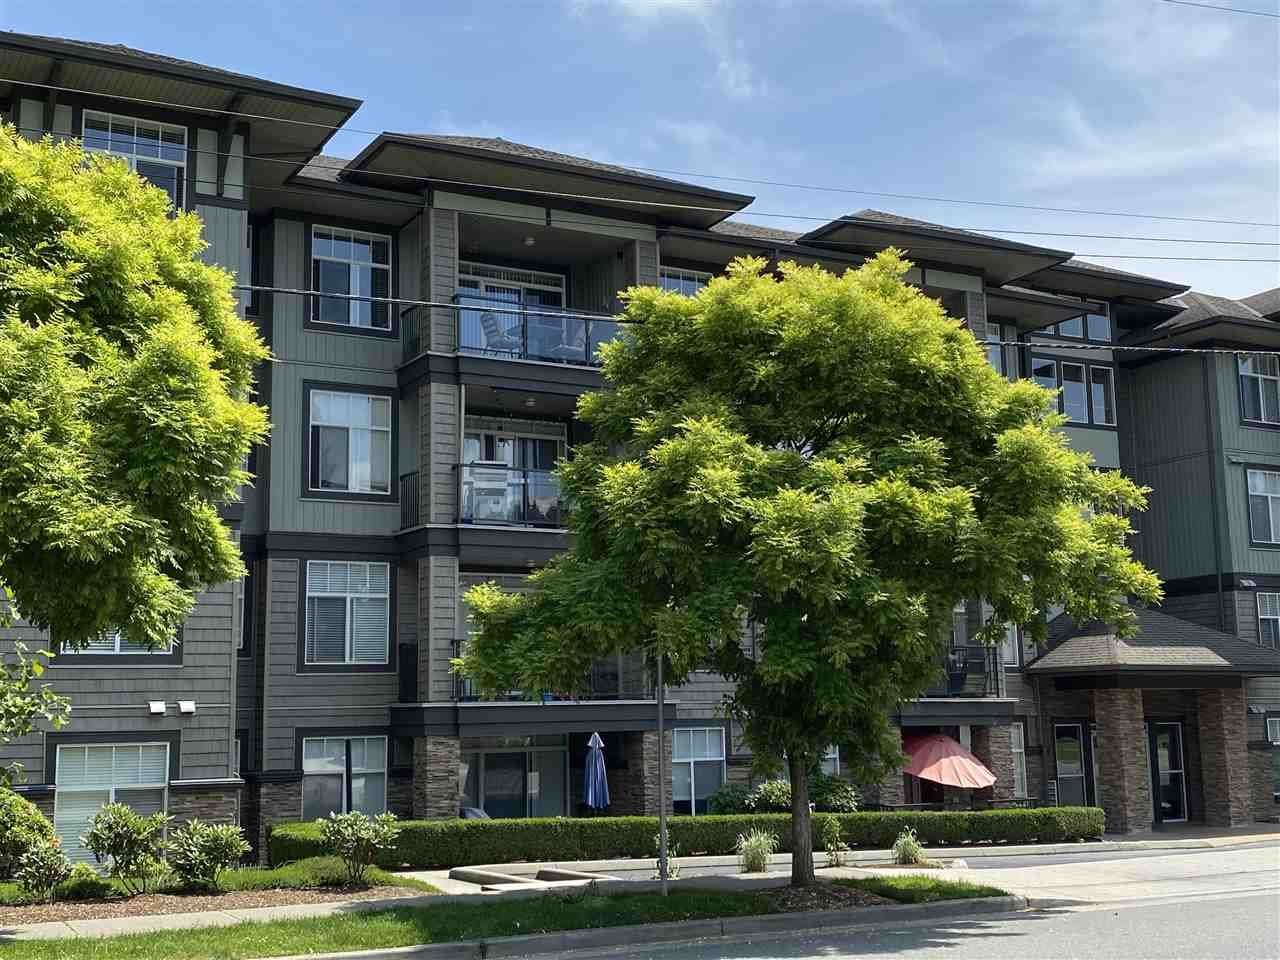 Main Photo: 402 2068 SANDALWOOD CRESCENT in Abbotsford: Central Abbotsford Condo for sale : MLS®# R2469396